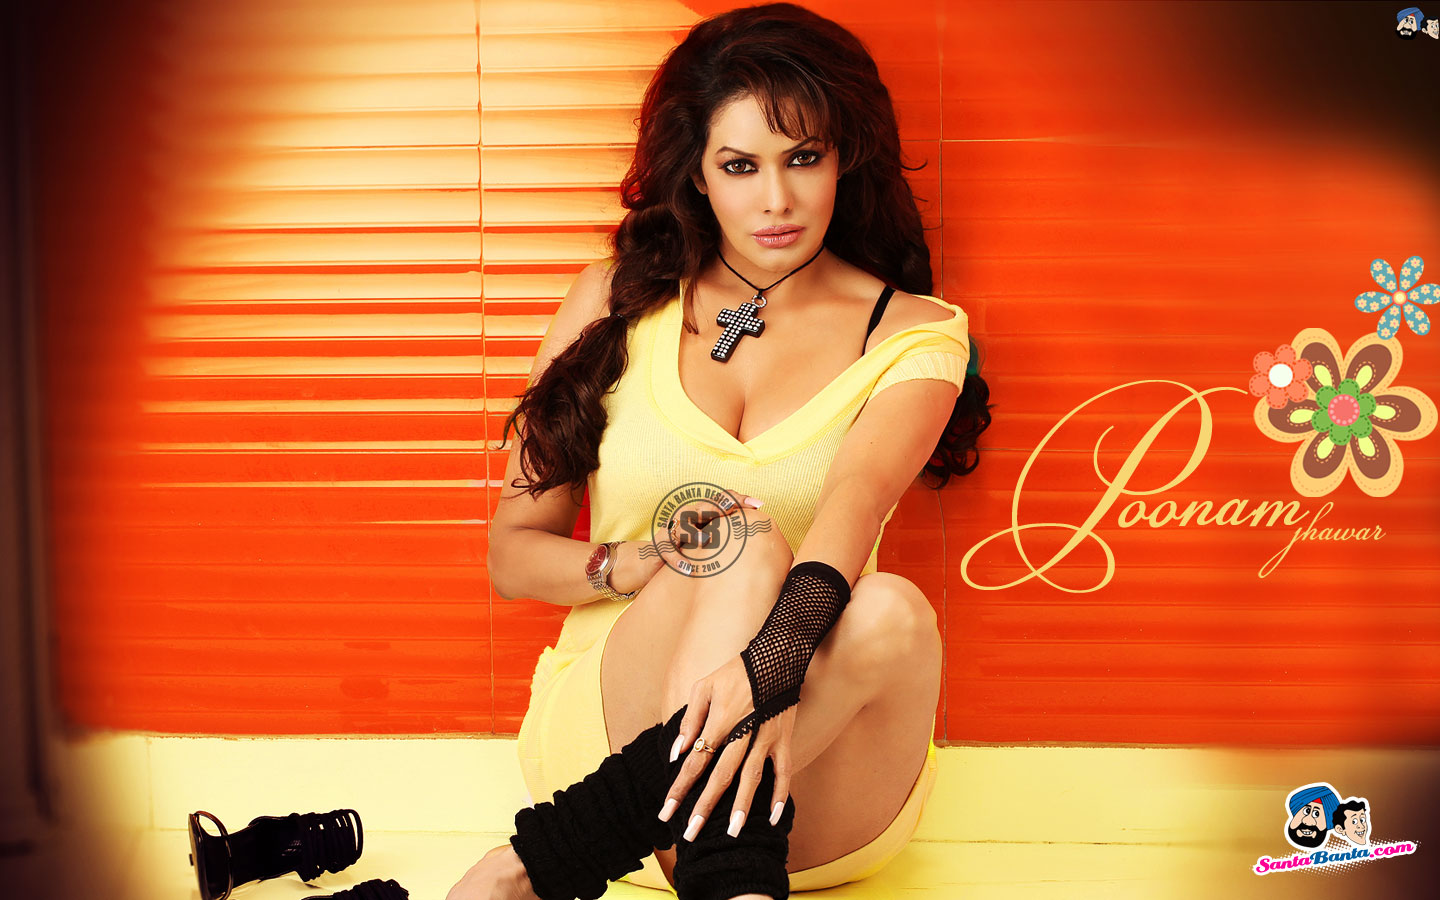 poonam jhawar nude boobs nipple pictures sexy topless pictures indian meghna naidu Diora Baird wallpaper topless nude sexy hd 1900 wallpapers high quality global actress playboy play actress model 3 Maria Sharapova full nude naked